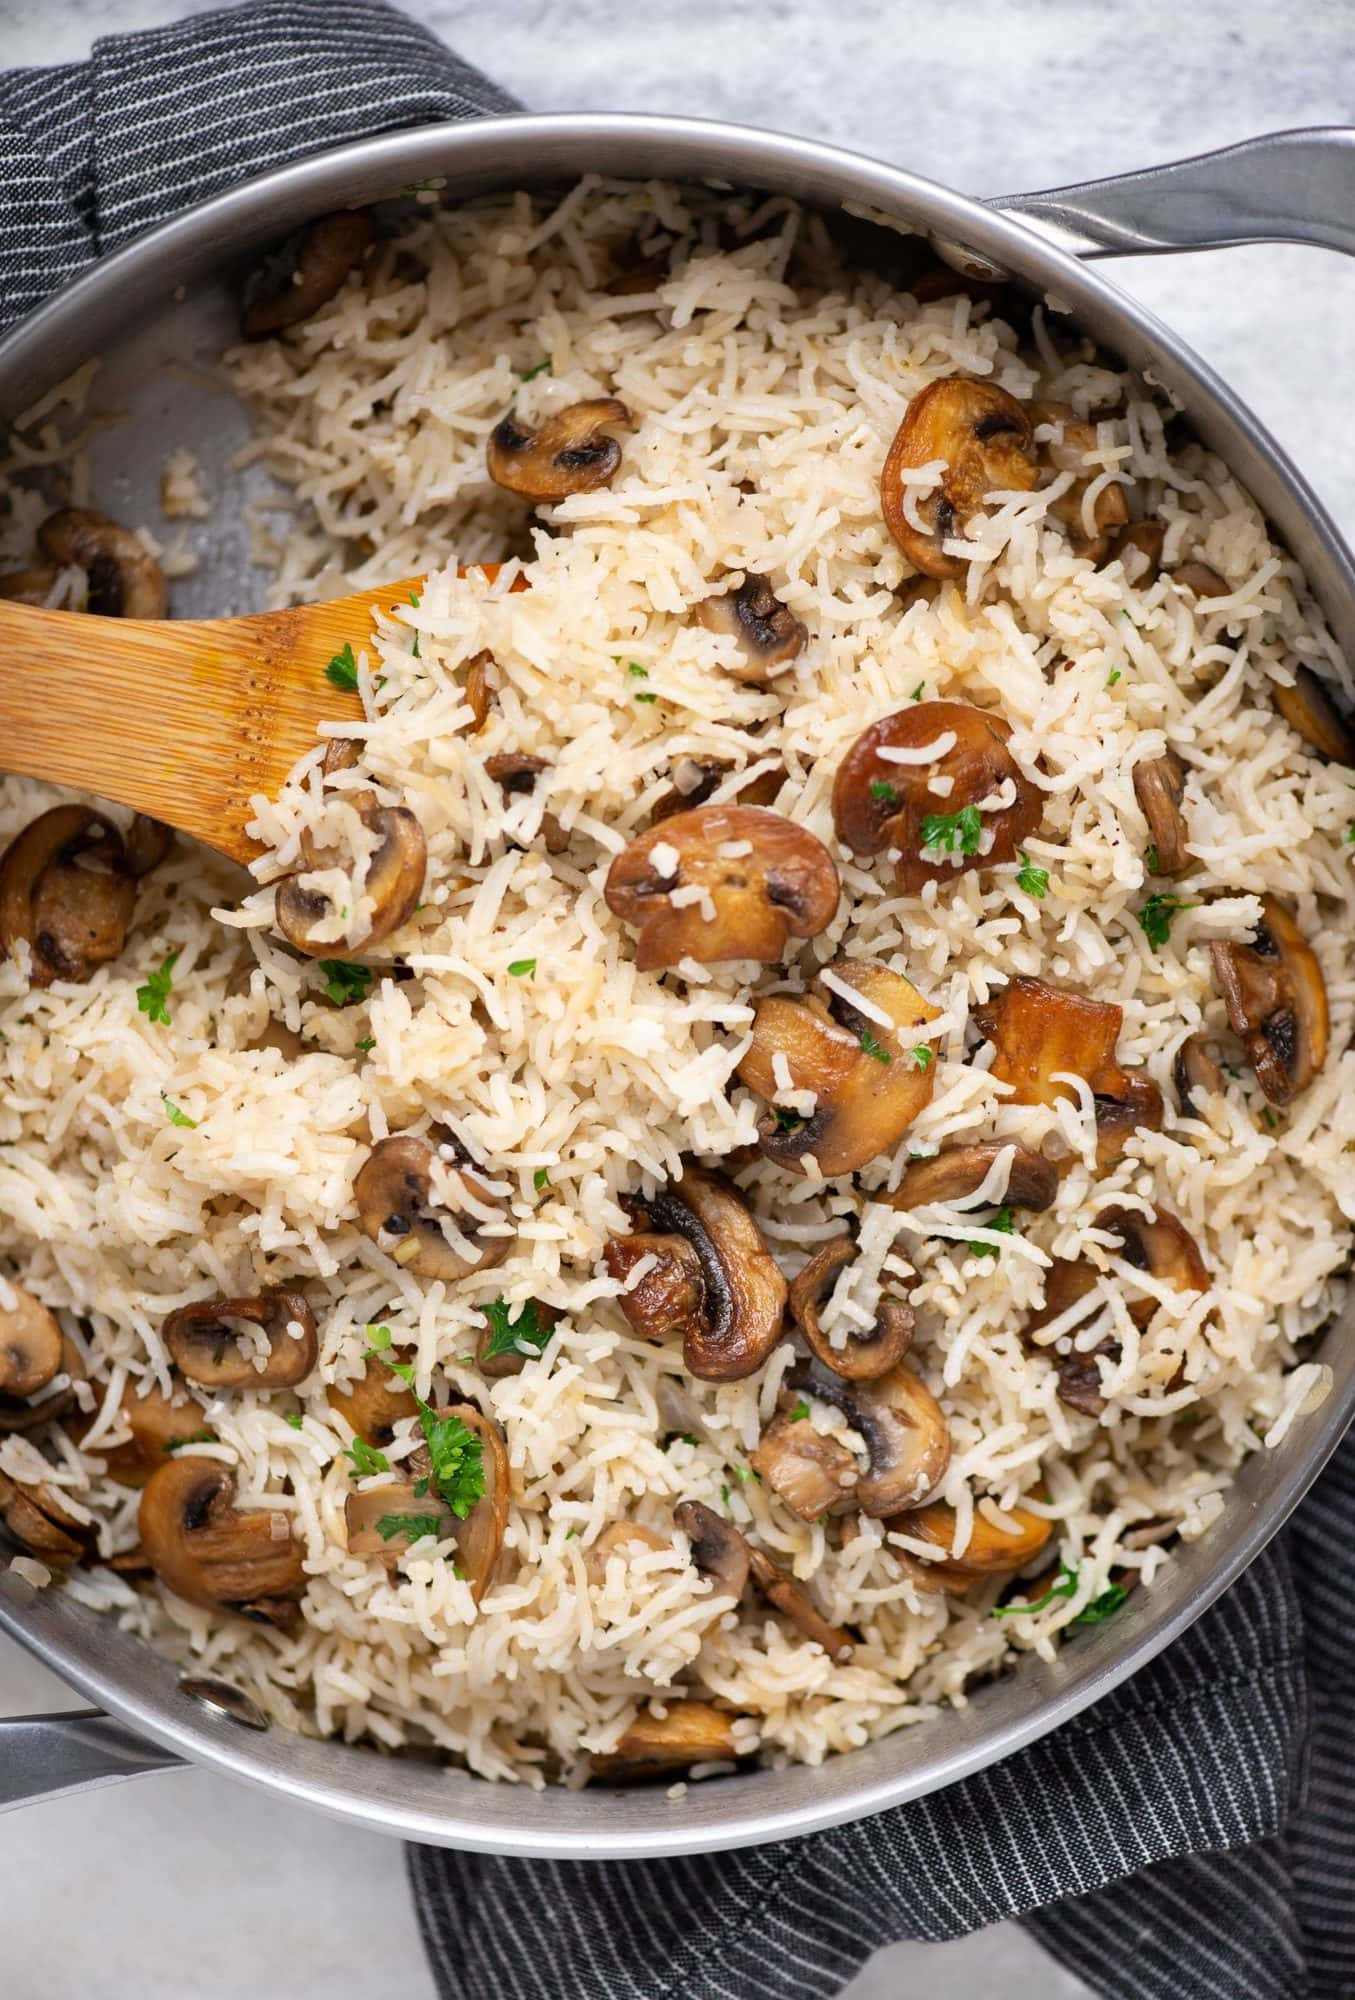 Mushroom rice made as a one-pot dish shown in a pot with brown colored rice and sauteed mushrooms.